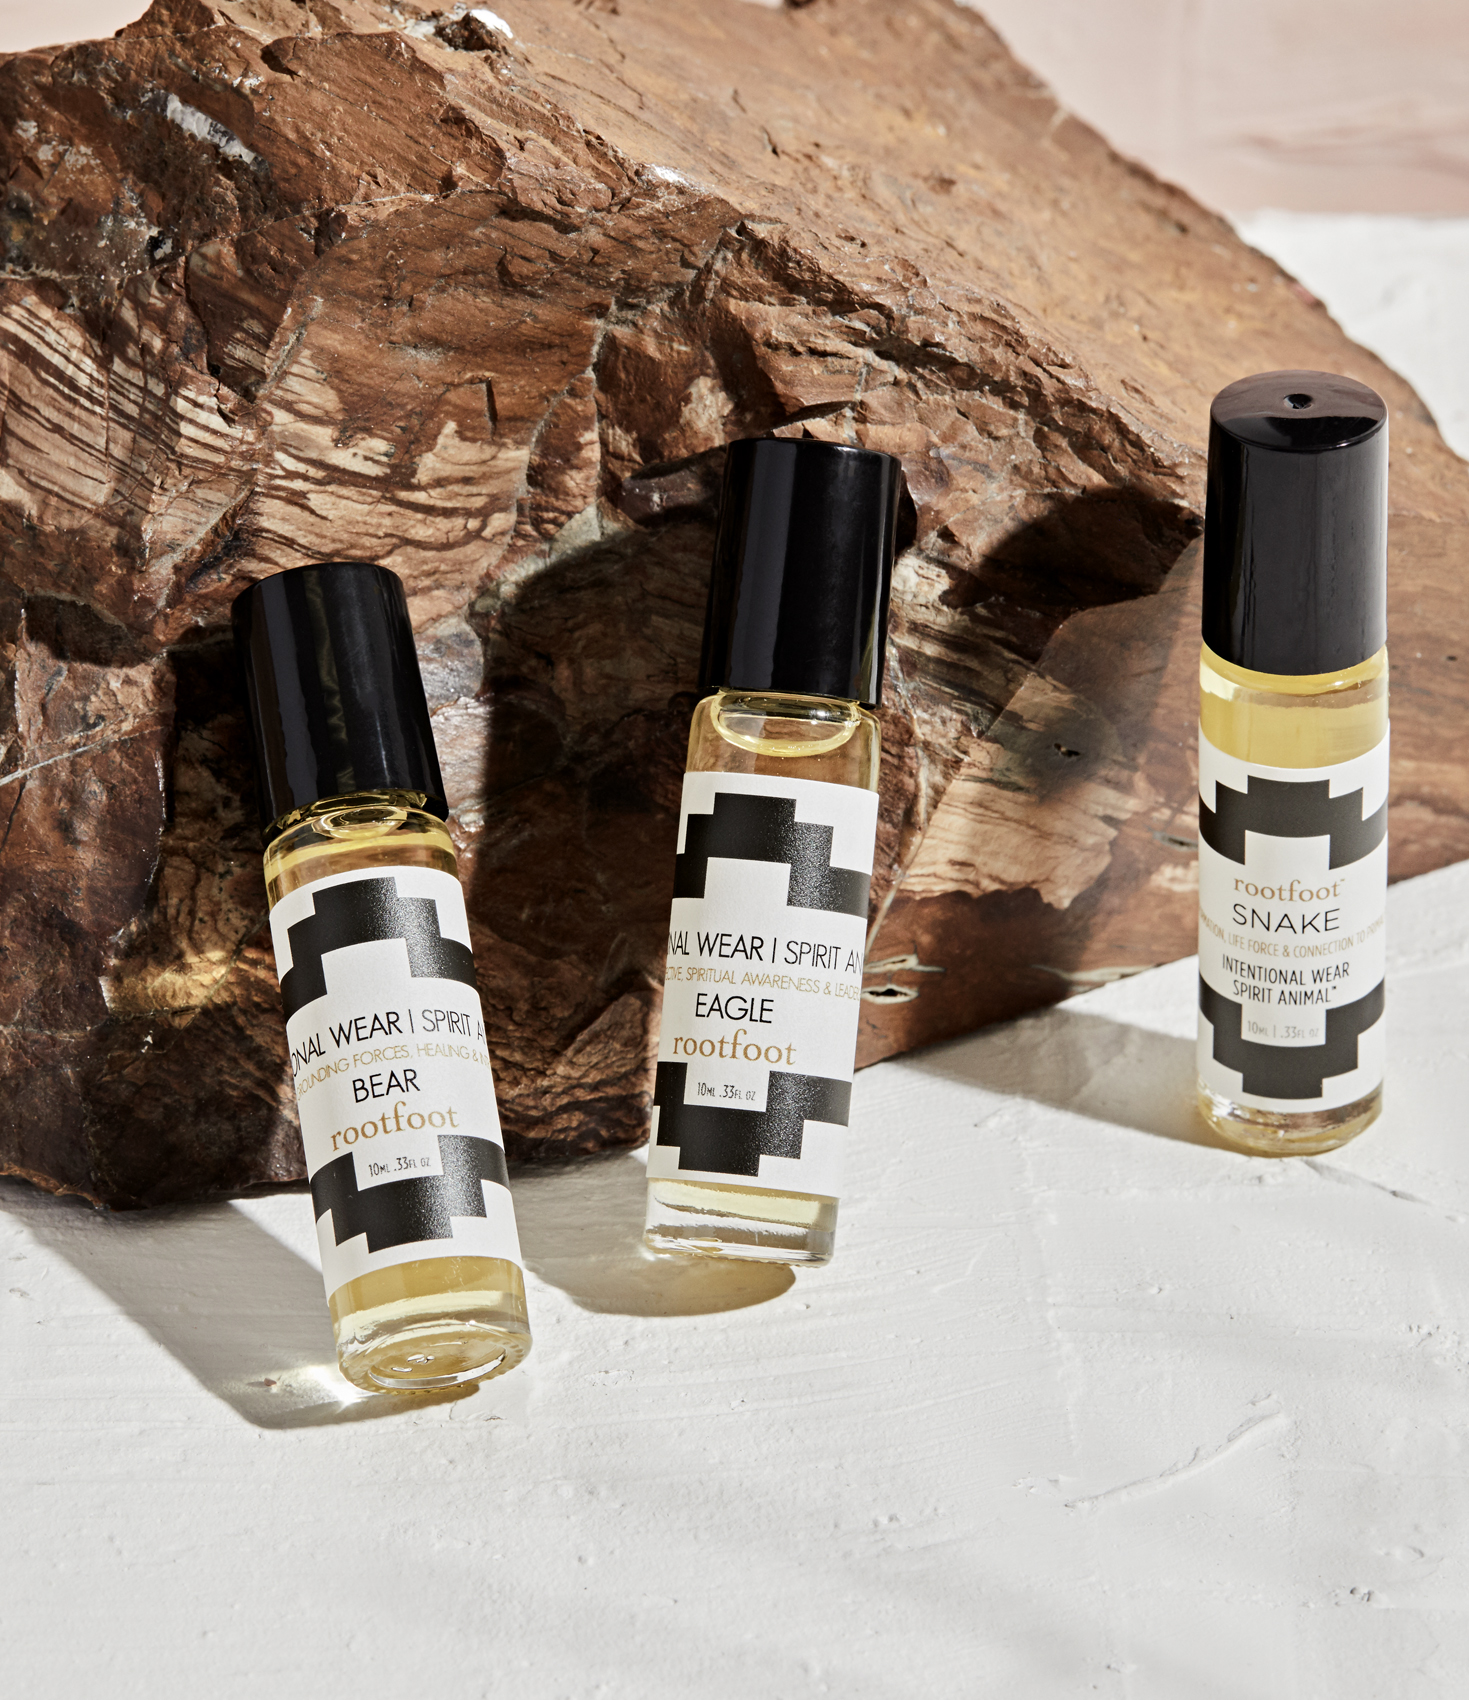 Pure Plant Fragrances - High-vibrational plant wisdom aromas